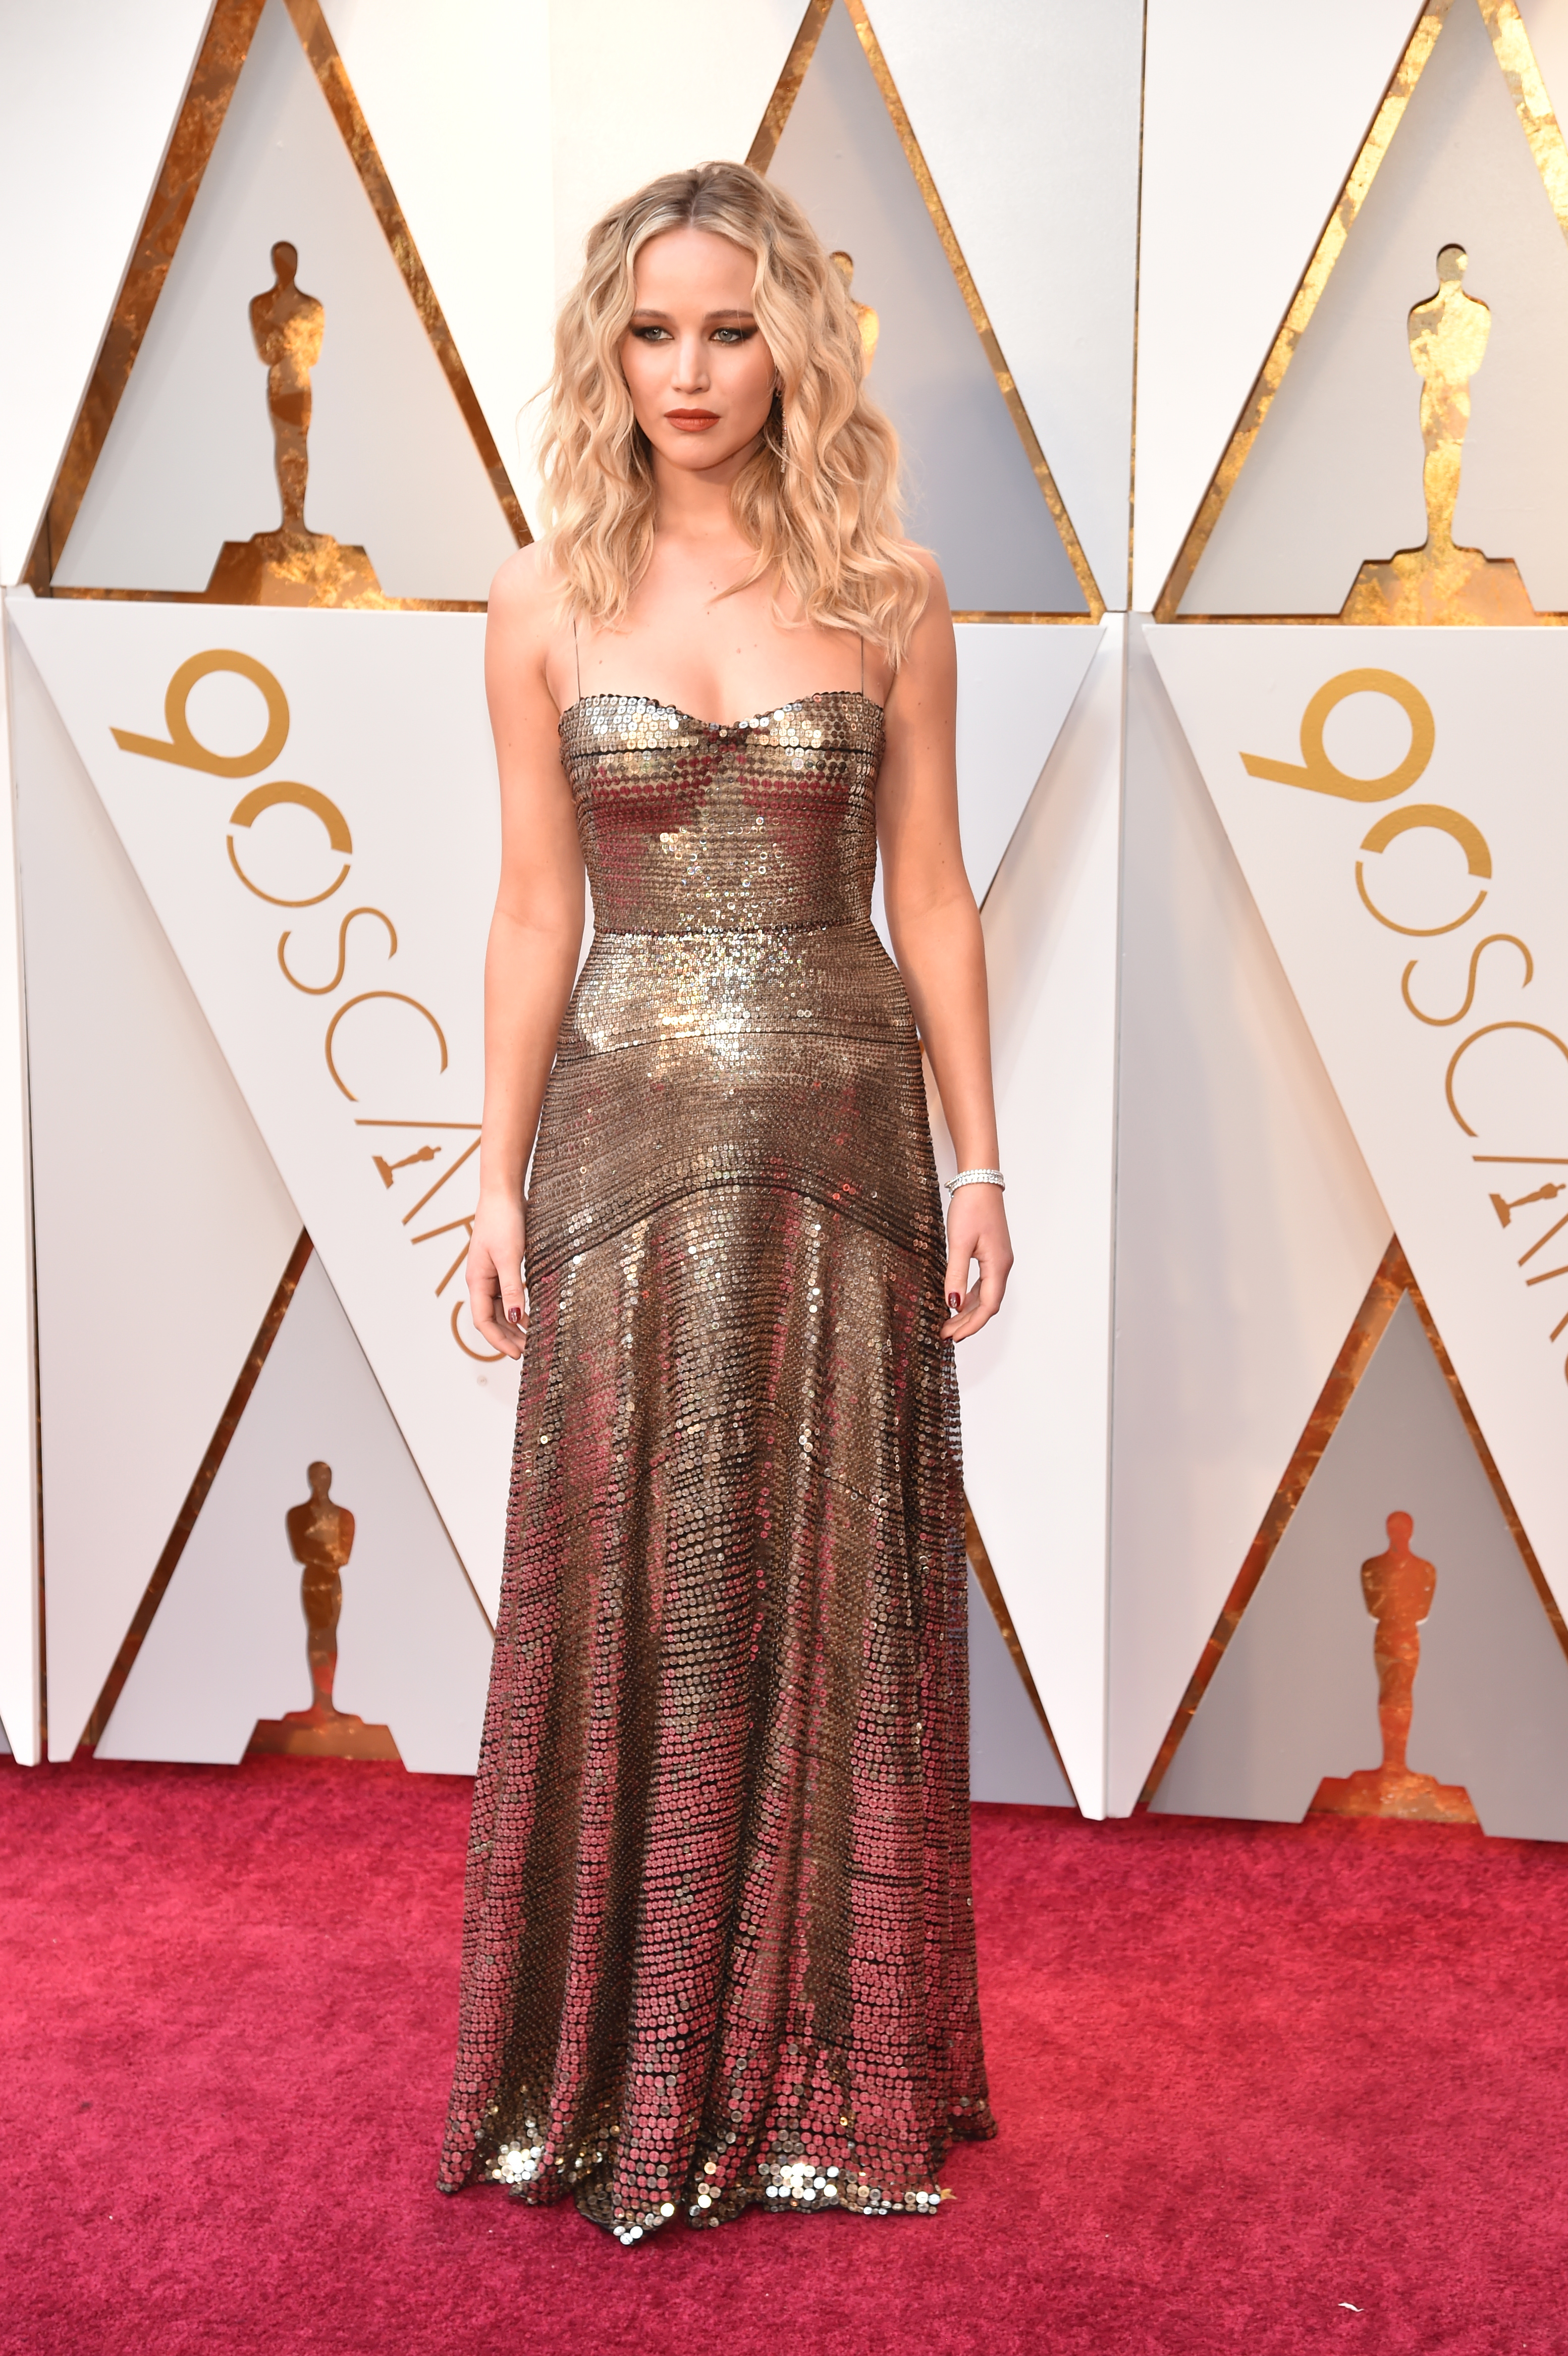 Jennifer Lawrence attends the 90th Annual Academy Awards at Hollywood & Highland Center on March 4.